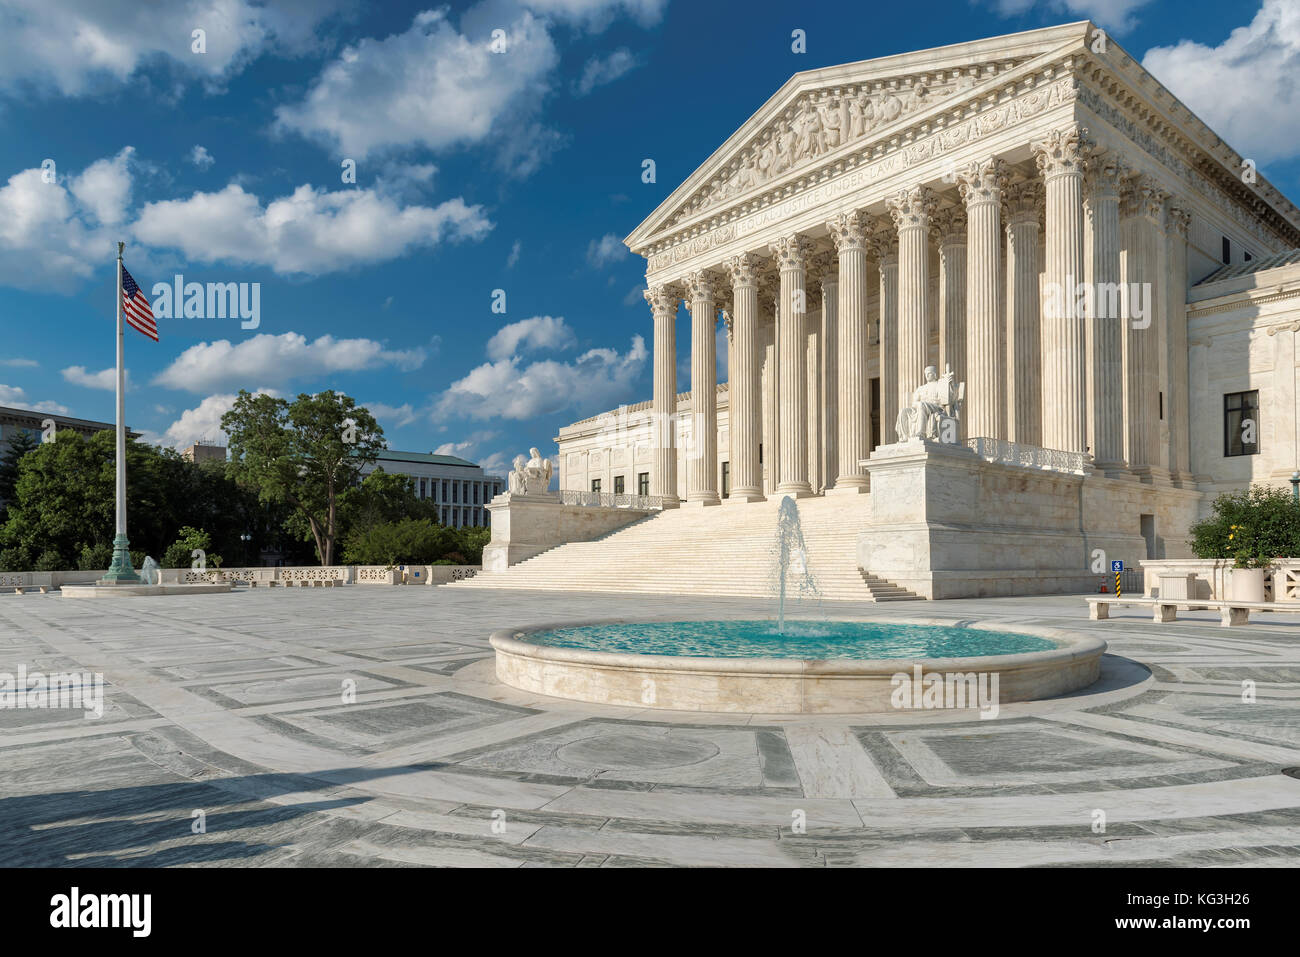 United States Supreme Court Building and fountain at sunny day in Washington DC, USA. Stock Photo